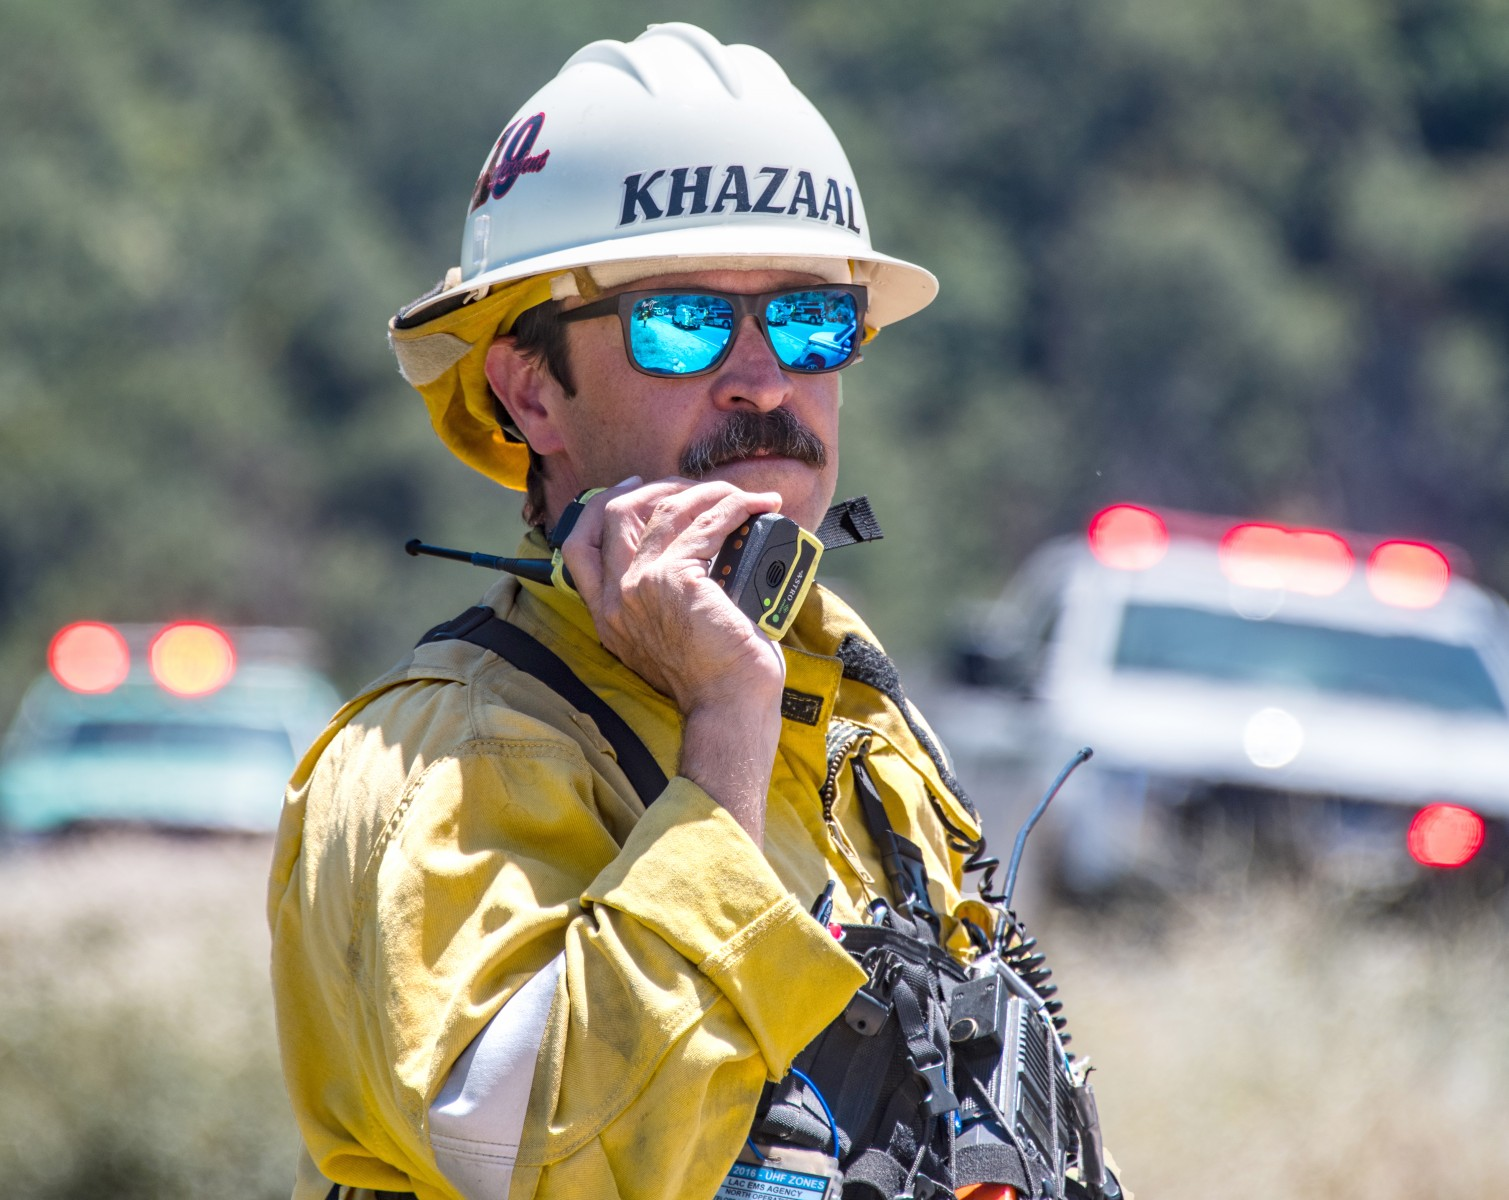 As a fire captain and camp superintendent, Mo Khazaal leads six wildland firefighting crews for the Los Angeles County Fire Department. Photo by 564FIRE.com